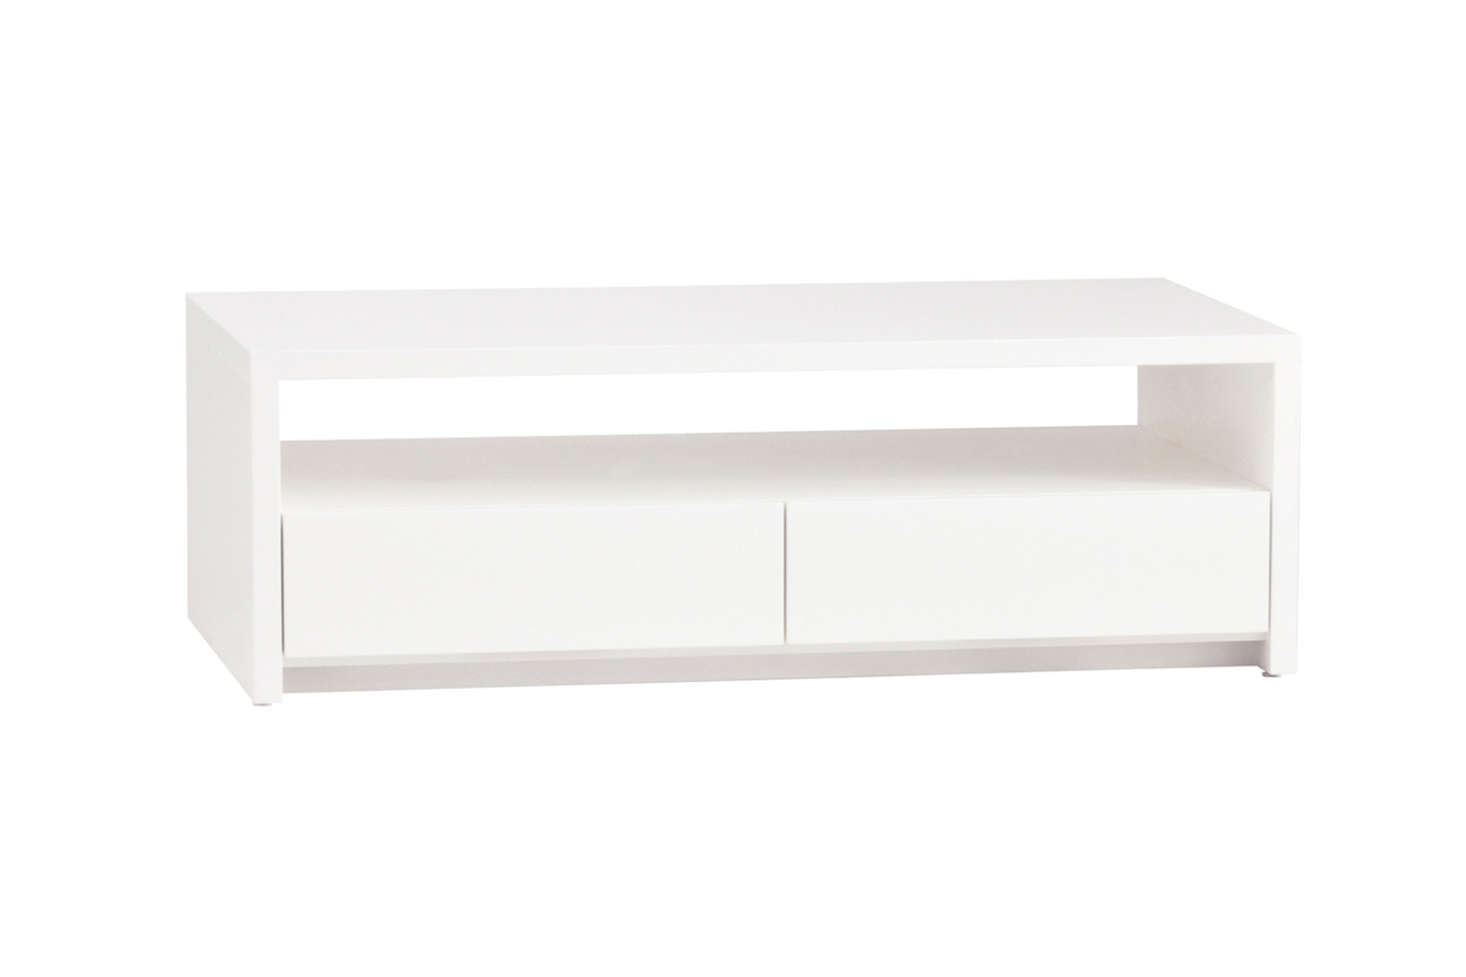 From Urban Green Furniture in Brooklyn, the Thompson Cocktail Table, shown in White, is $839.